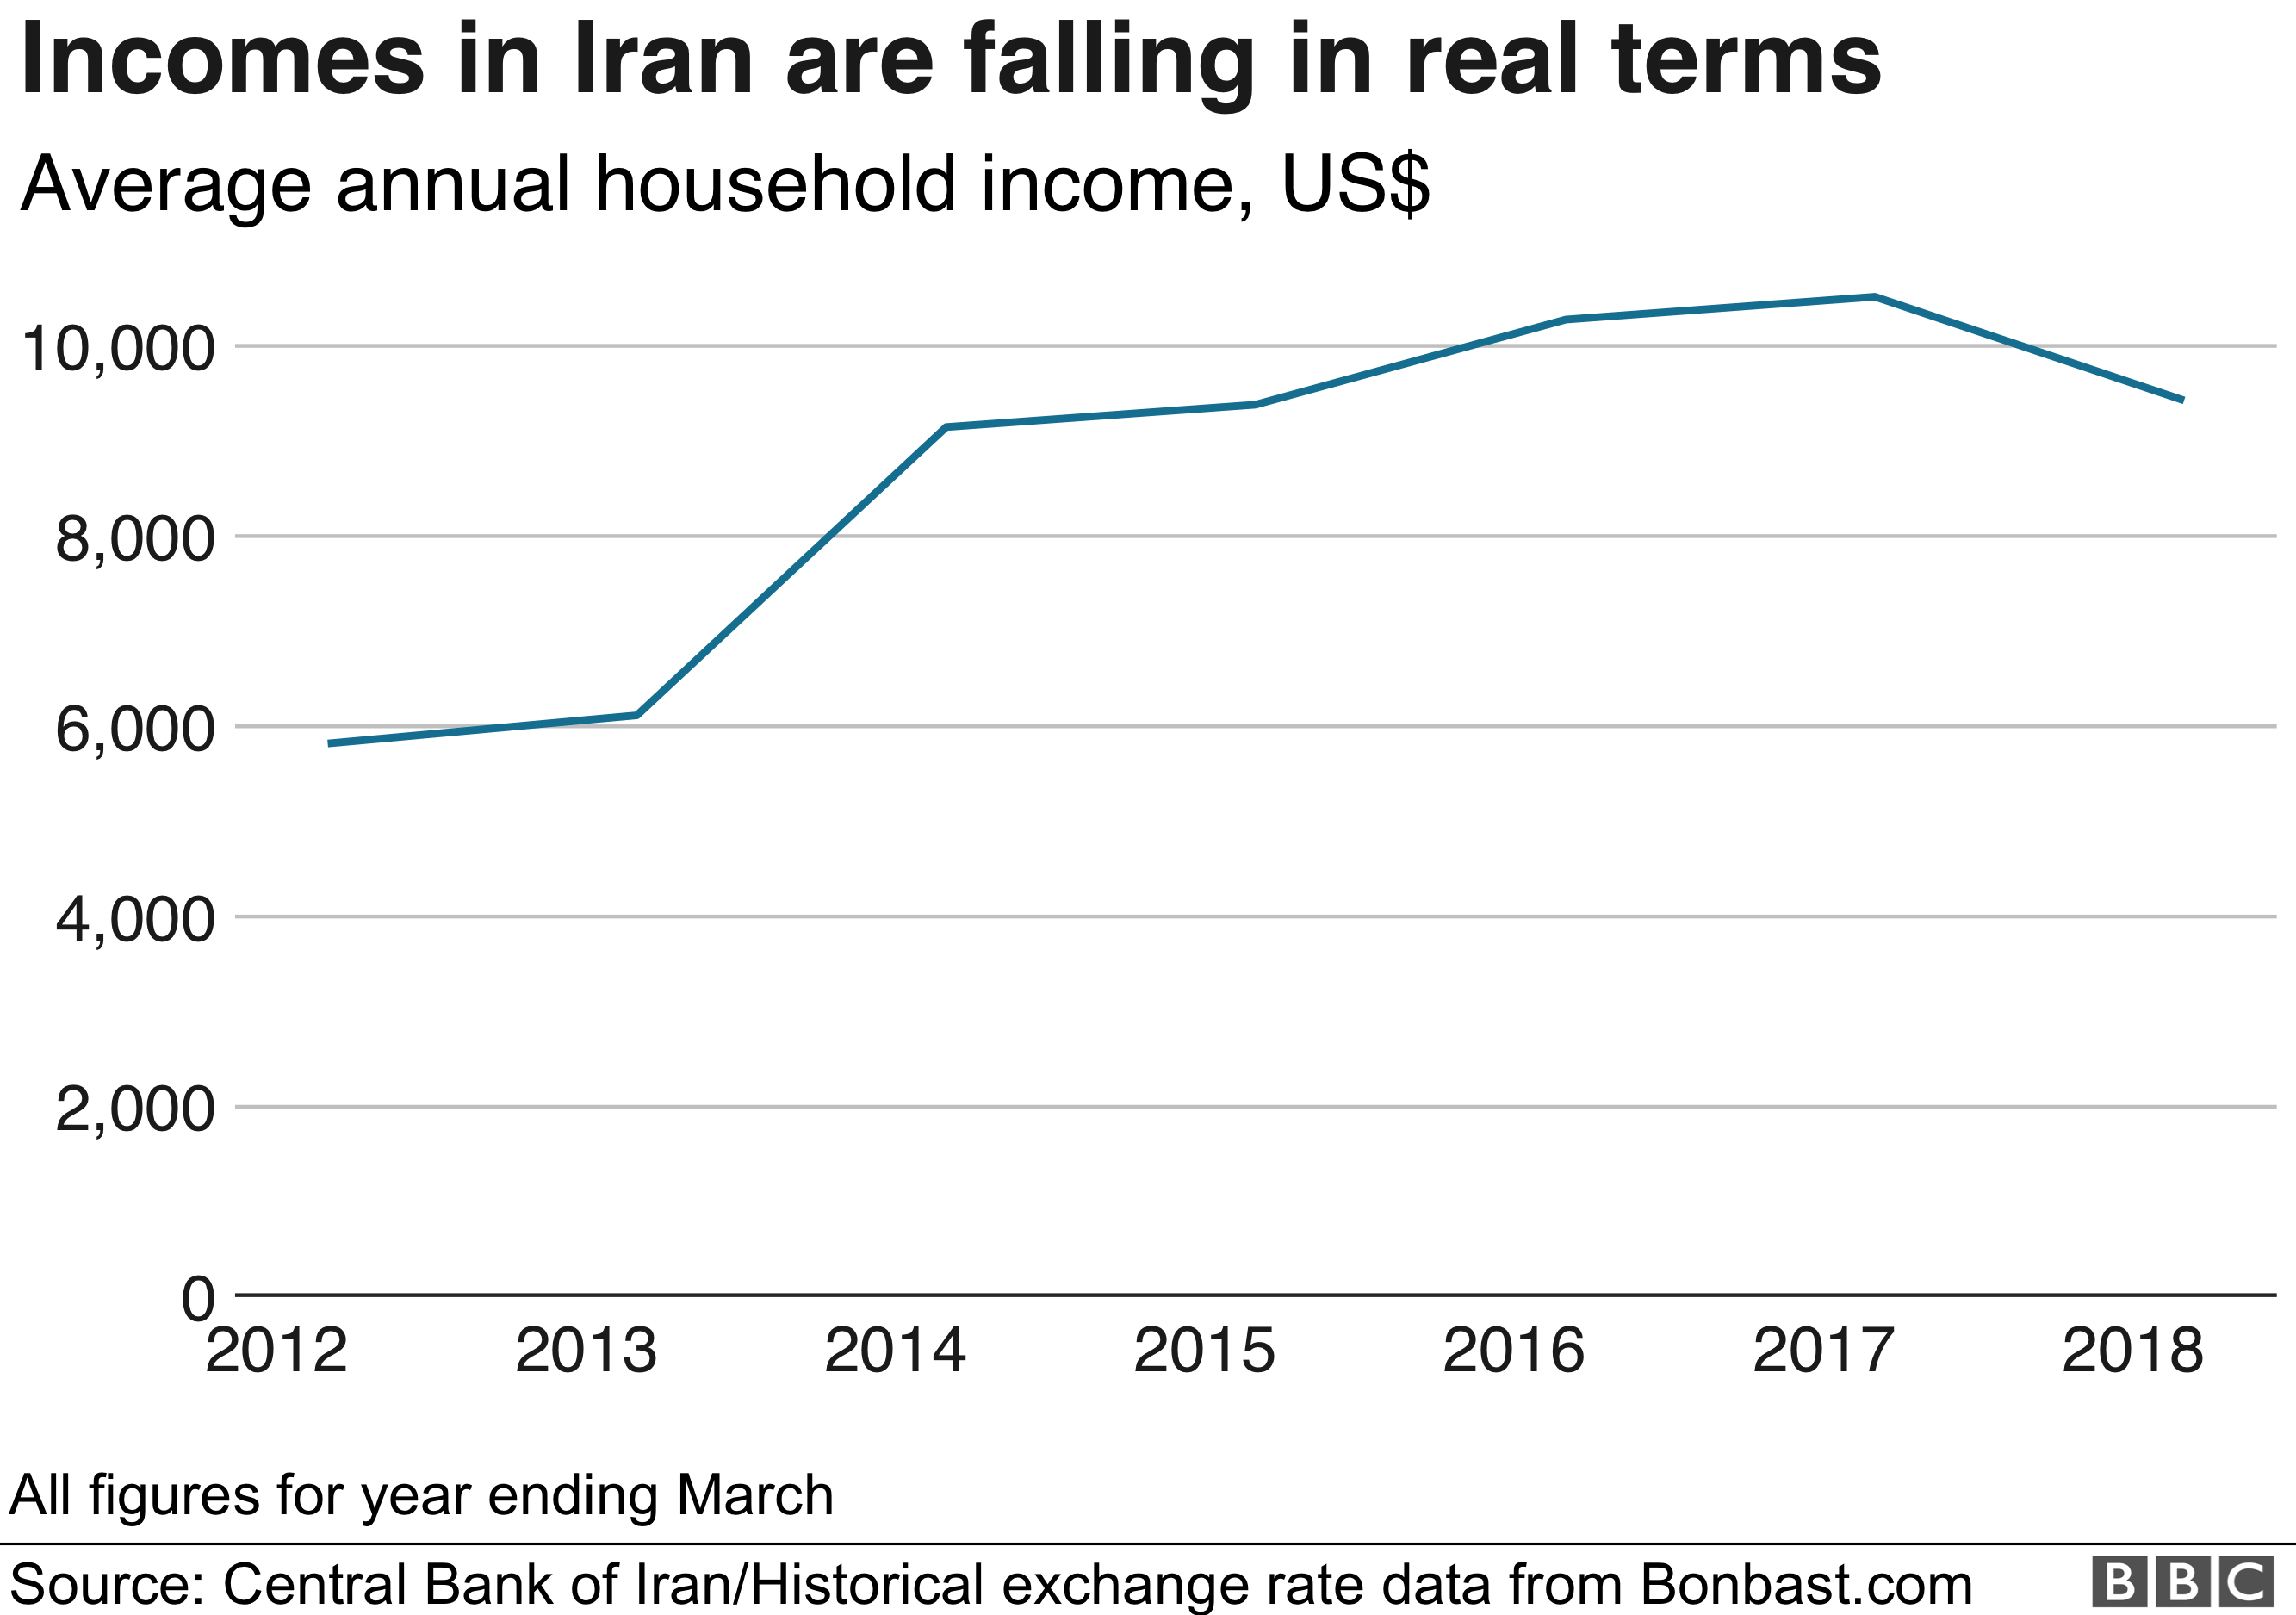 Chart showing average annual household income in Iran